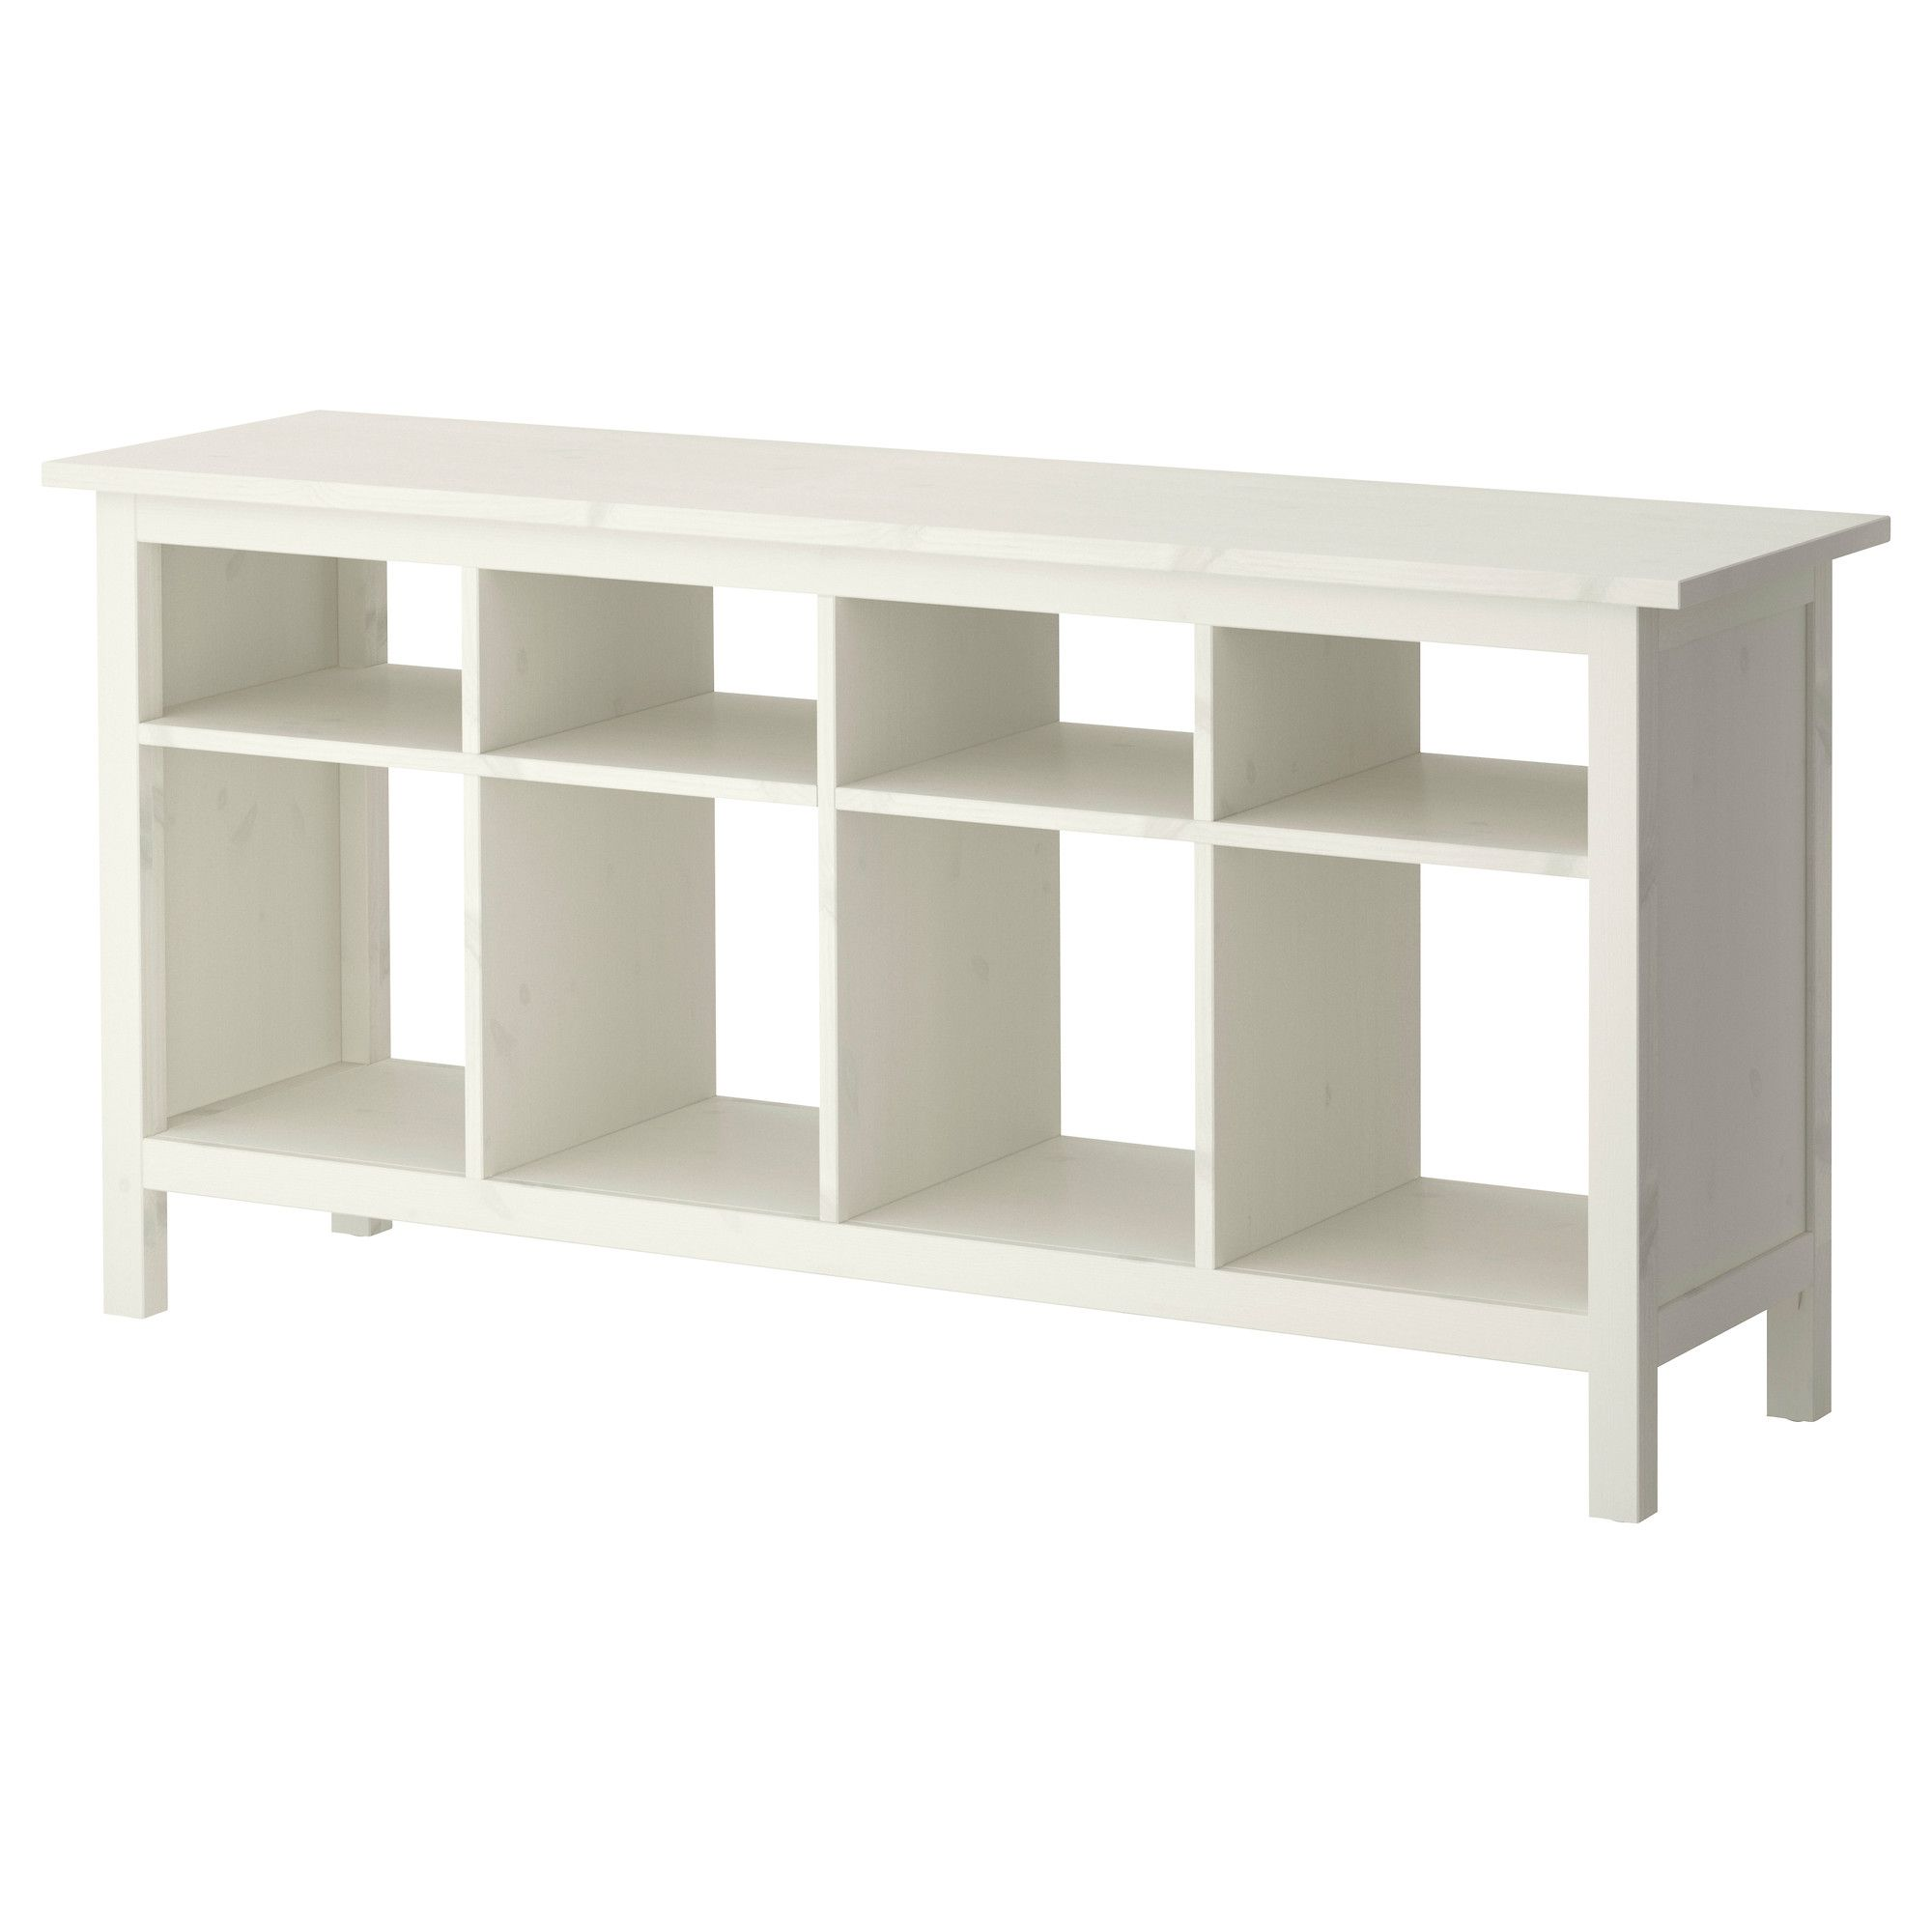 Hemnes console table white stain hemnes white stain for Sofa table canada